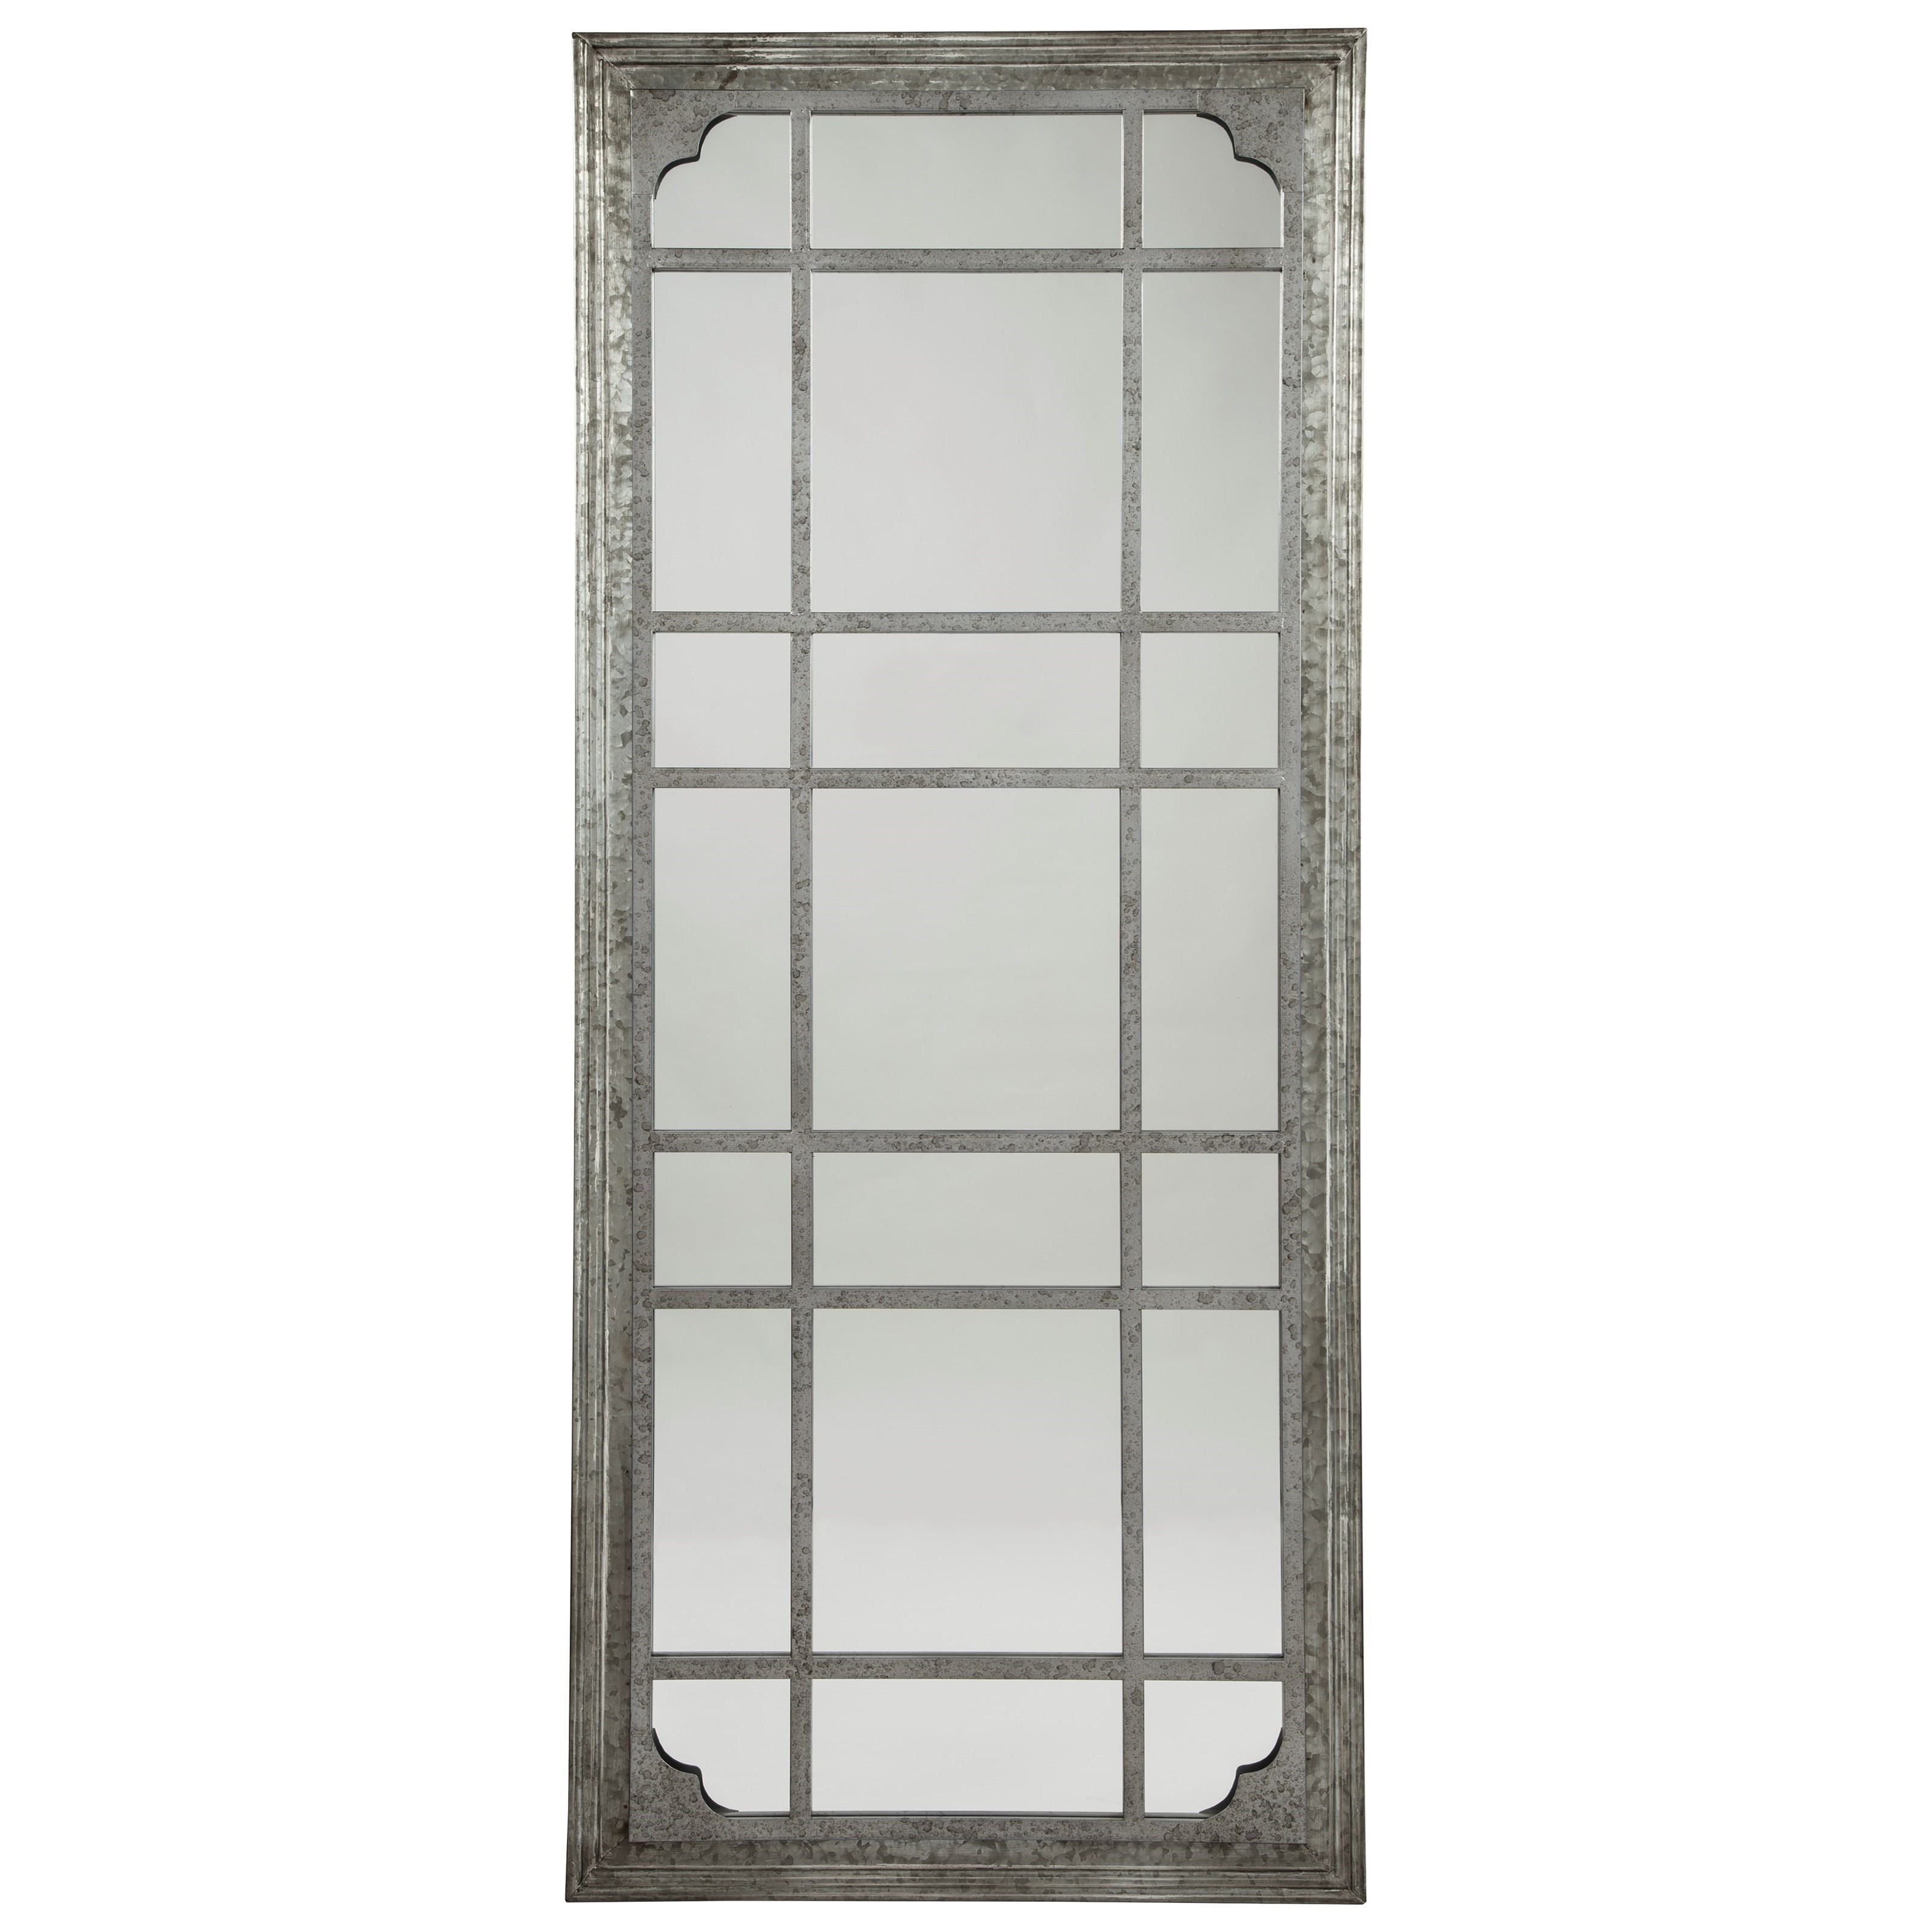 Signature Design by Ashley Accent Mirrors Remy Antique Gray Accent Mirror - Item Number: A8010131